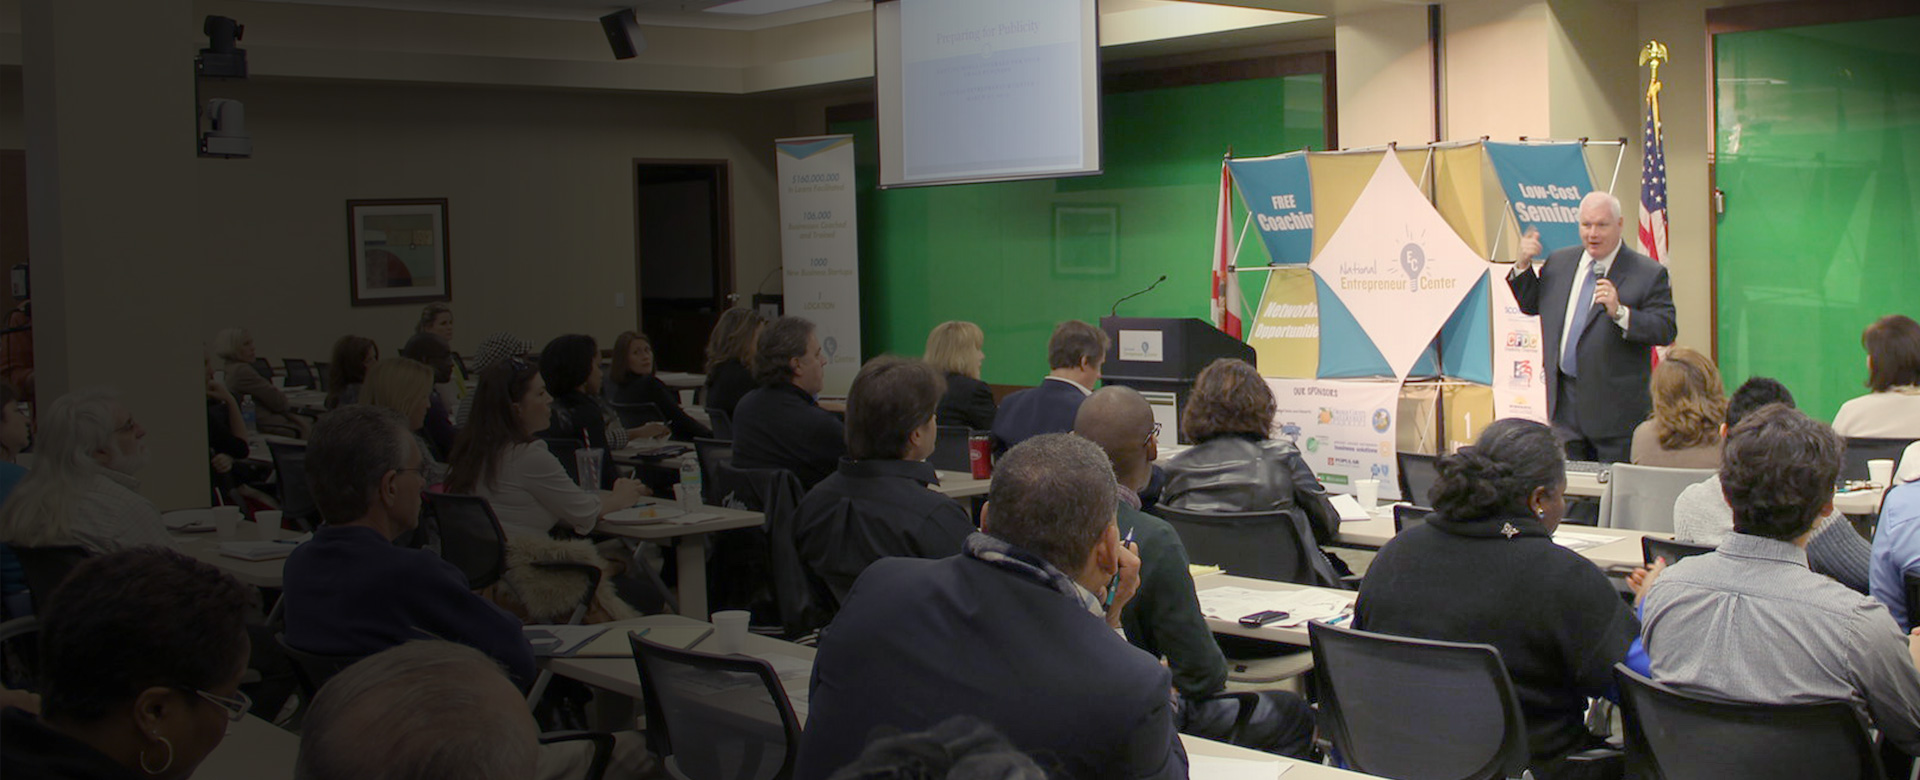 NEC is where businesses go to grow -- check out the seminars